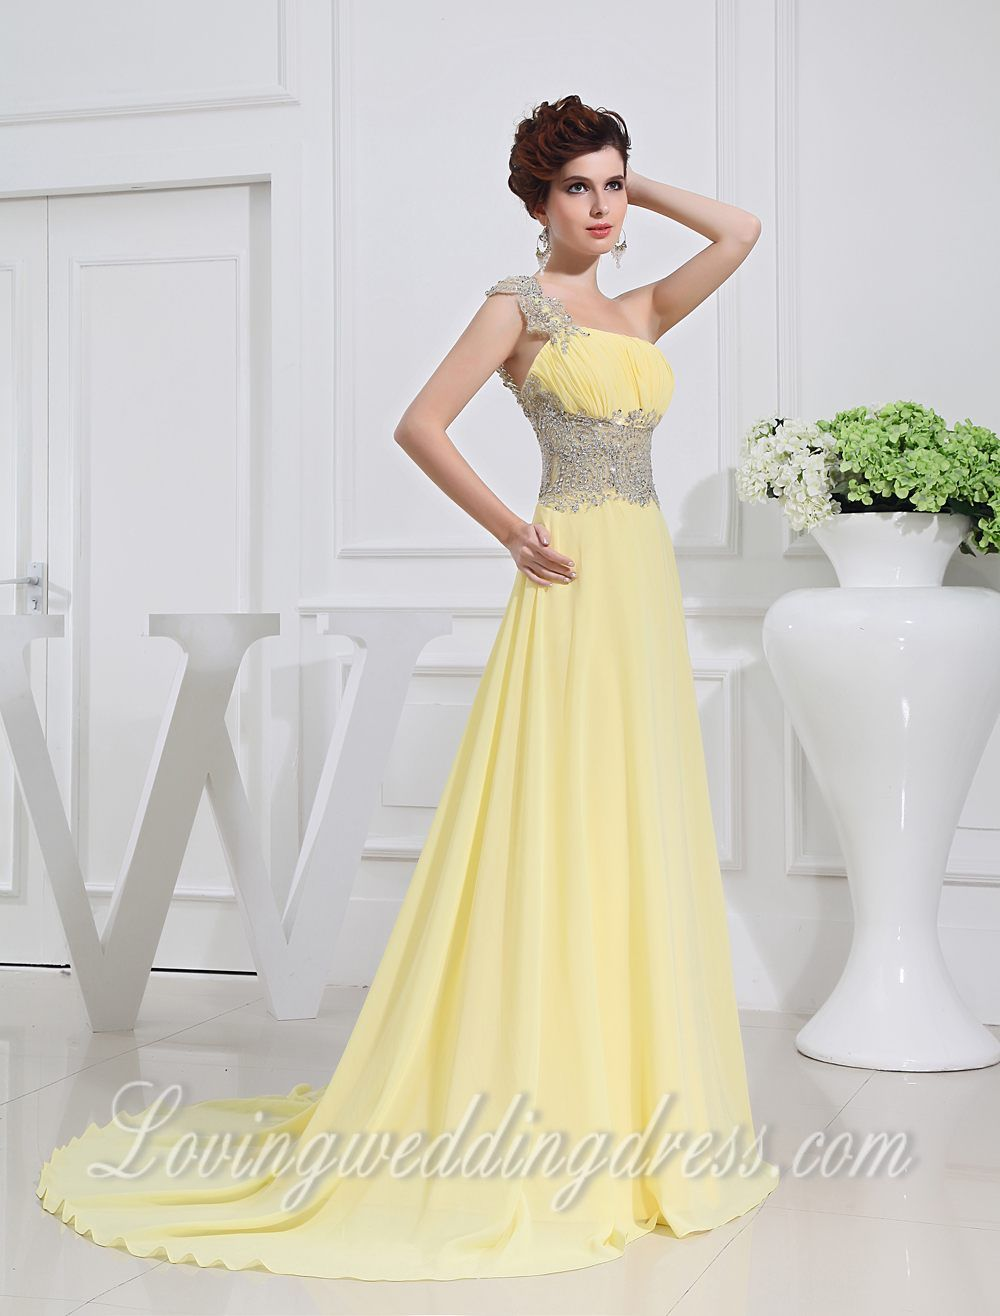 Lemon A-line One Shoulder Sequins Small Trailing Prom Dresses.For Christmas Day, The biggest price sale of the year up to 15%! Welcome to www.lovingweddingdress.com to learn more.